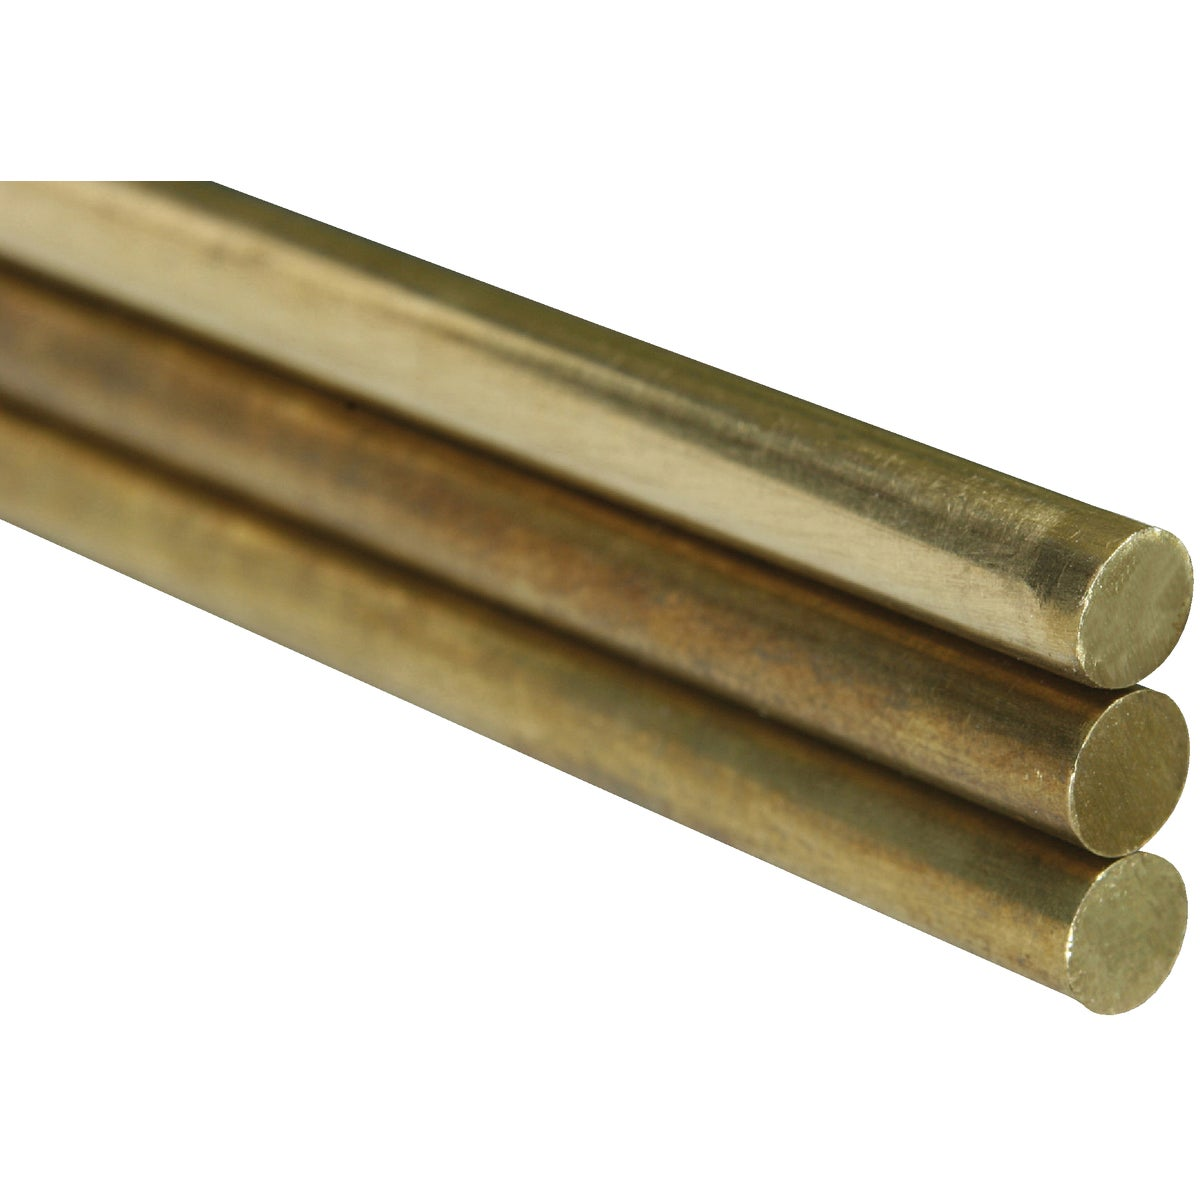 3/8X36 SOLID BRASS ROD - 1167 by K&s Precision Metals